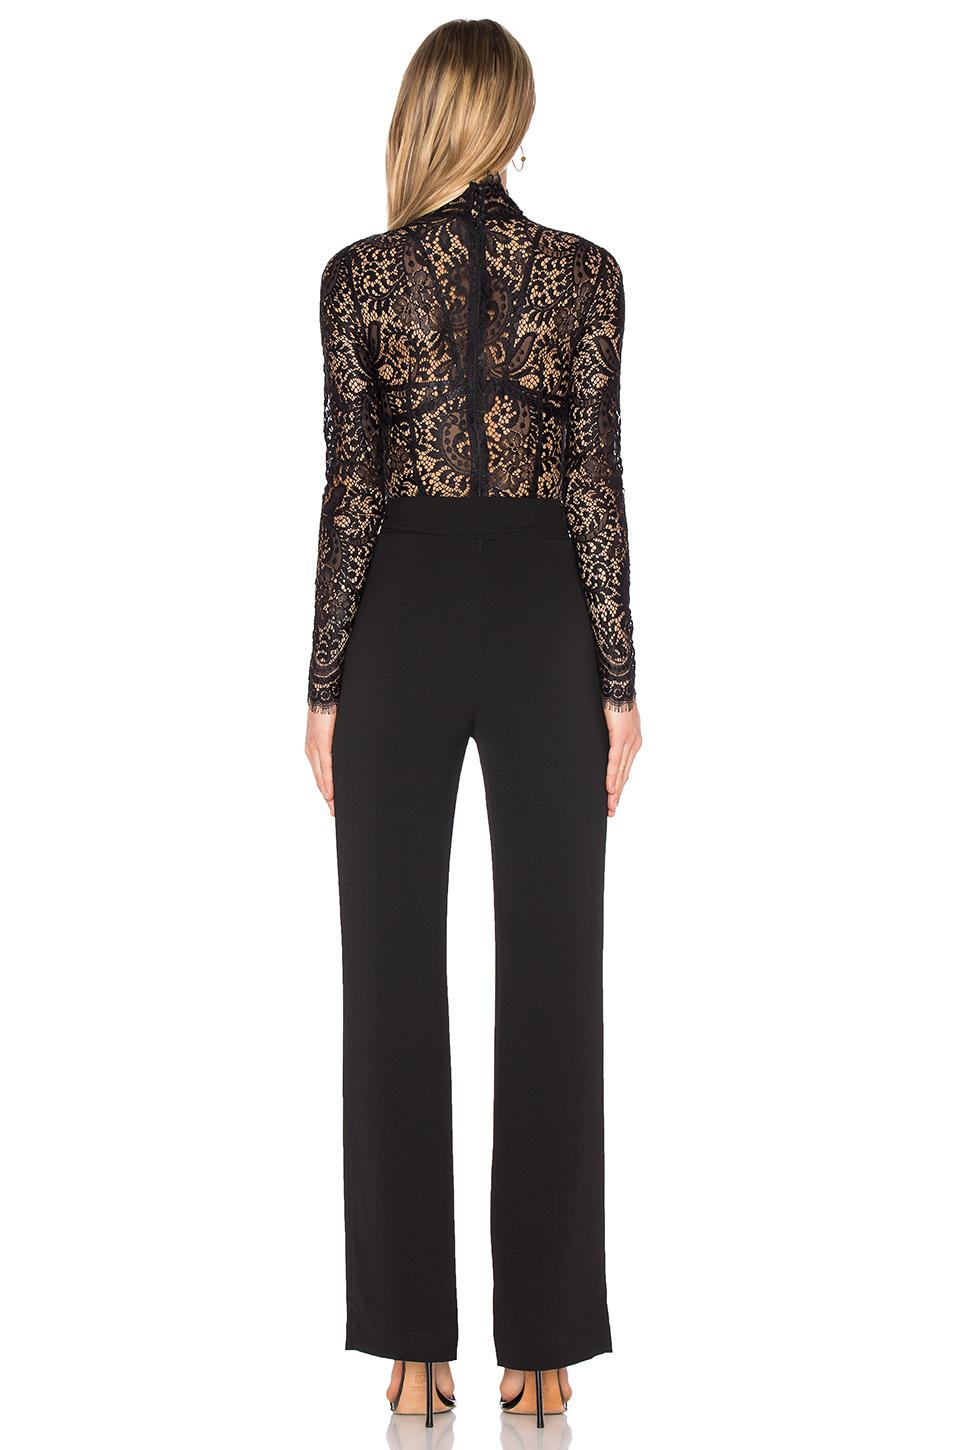 34927a42f04 Lyst - Misha Collection X Revolve Allegra Jumpsuit in Black